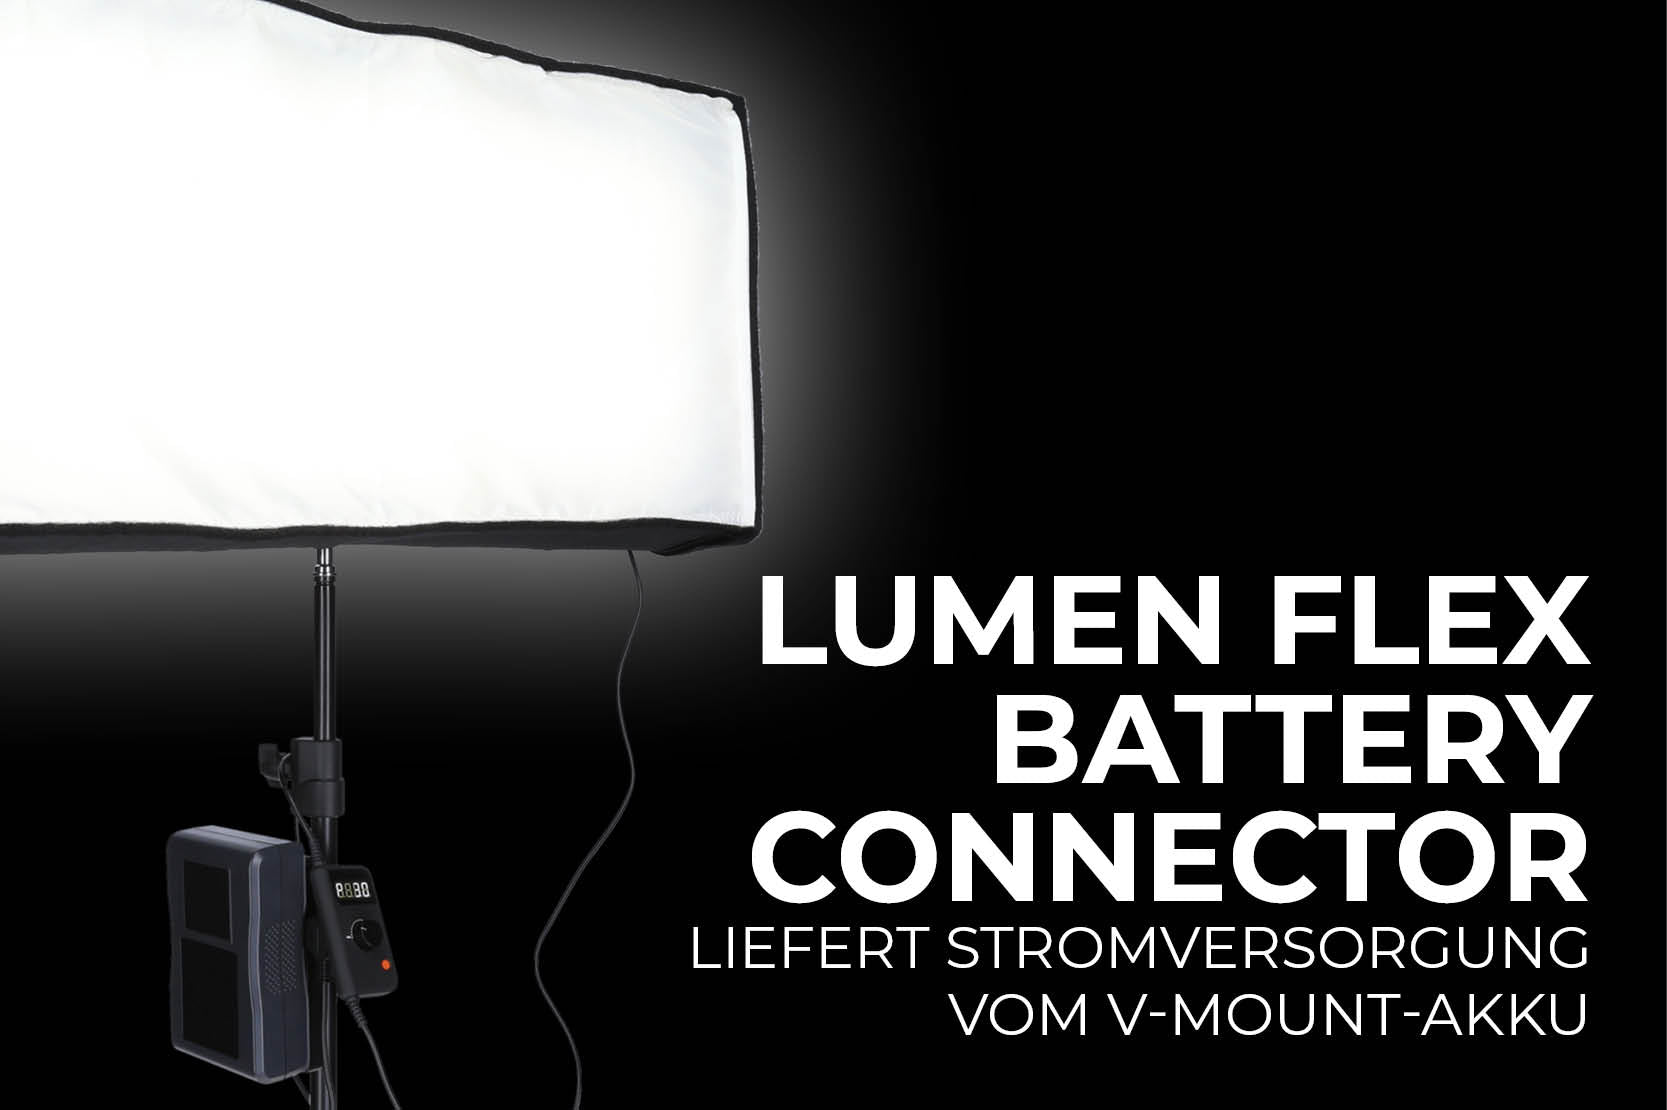 Lumen Flex Battery Connector Anwendungsbild